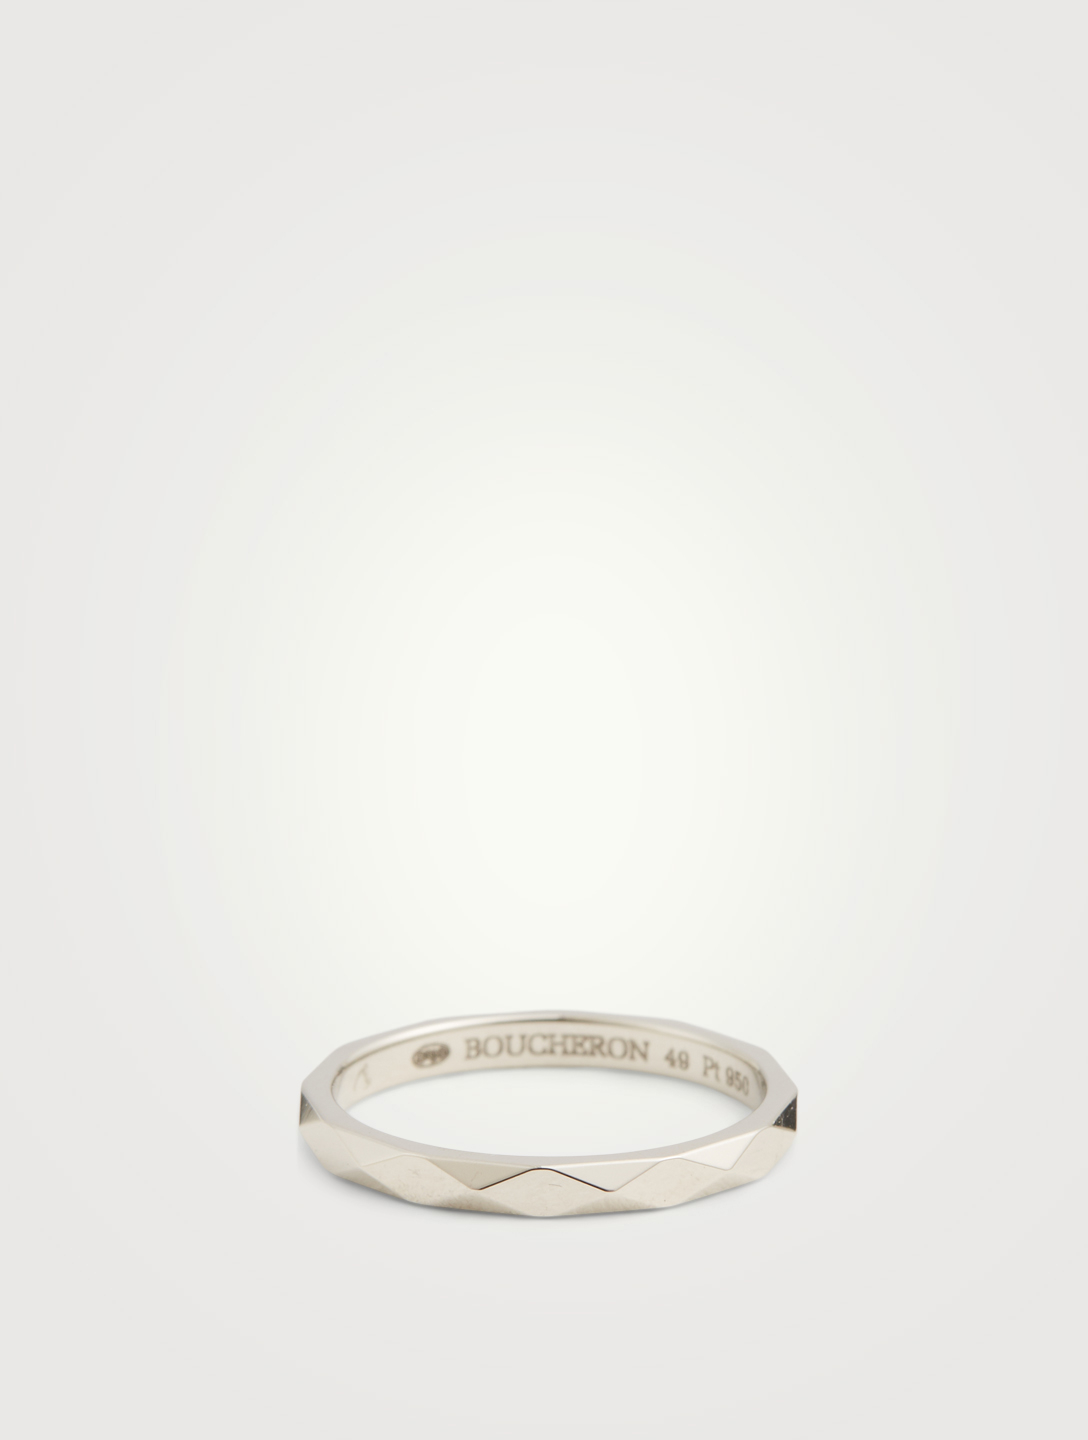 BOUCHERON Small Facette Platinum Wedding Band Women's Metallic